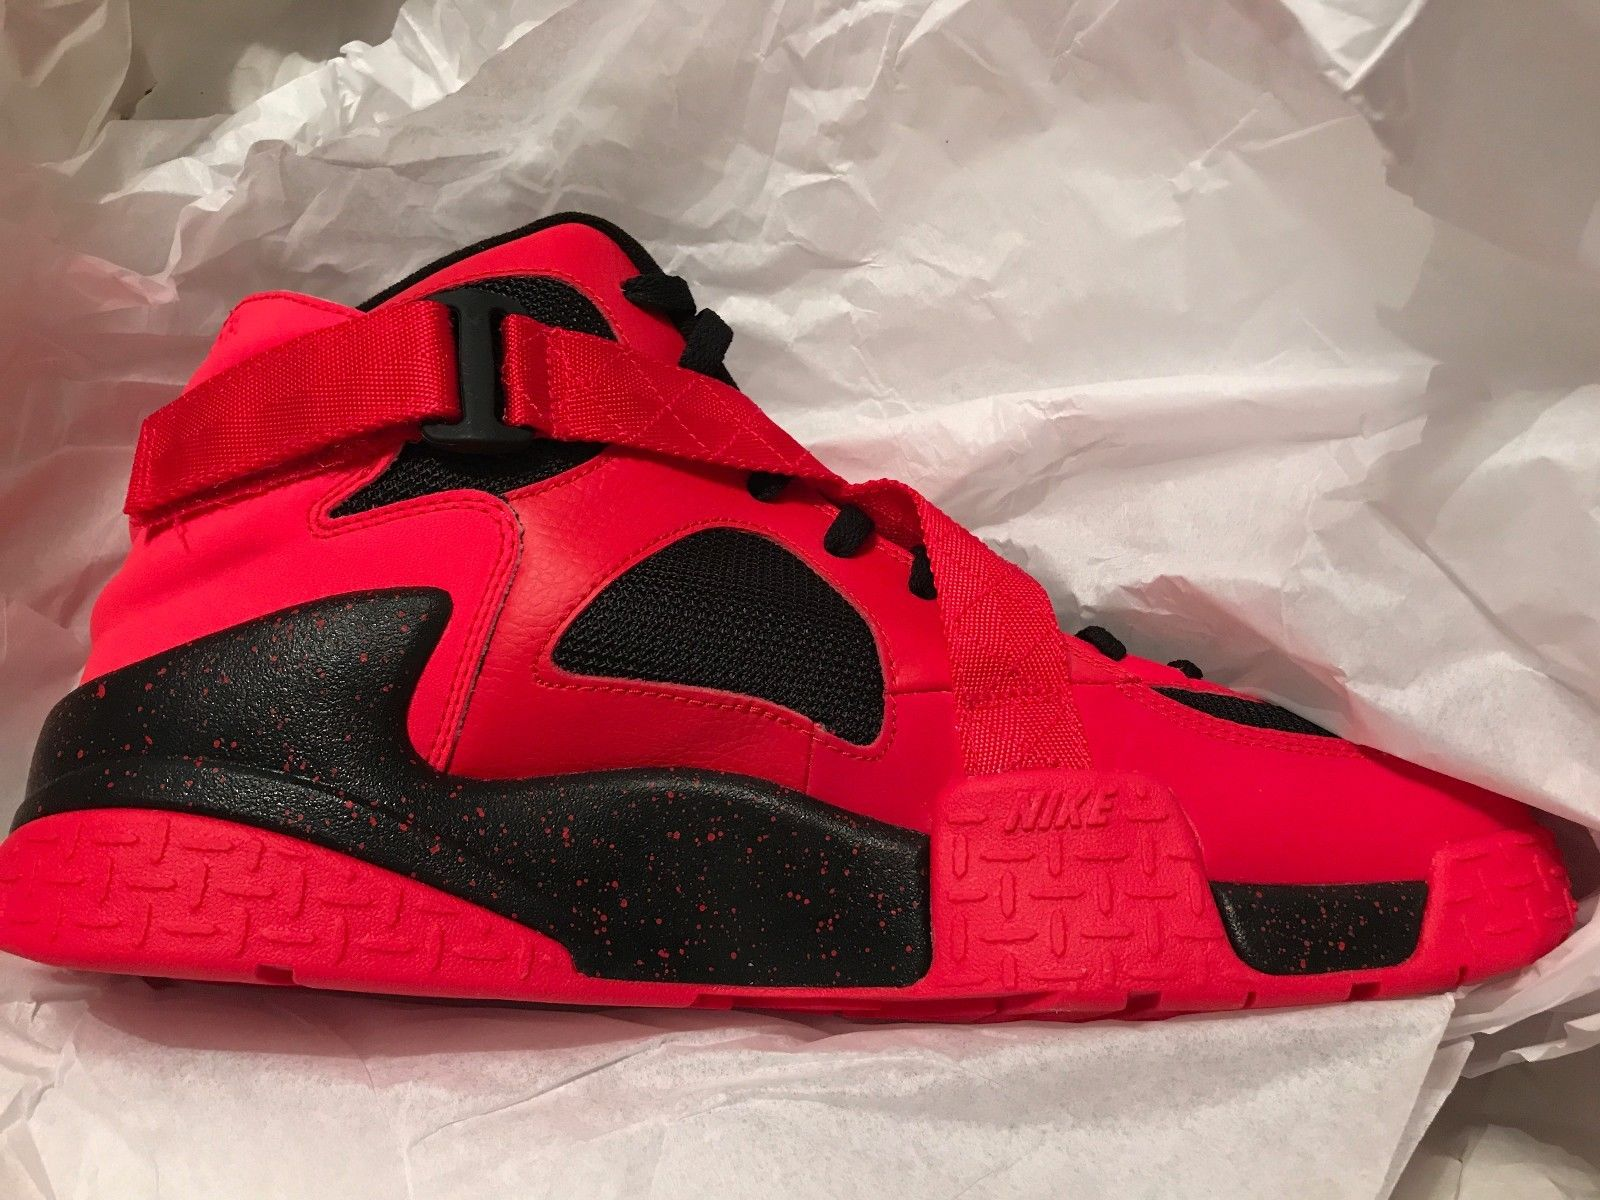 Image of Mens Nike Air Raid Lifestyle Shoes Size 13 Red Black White New